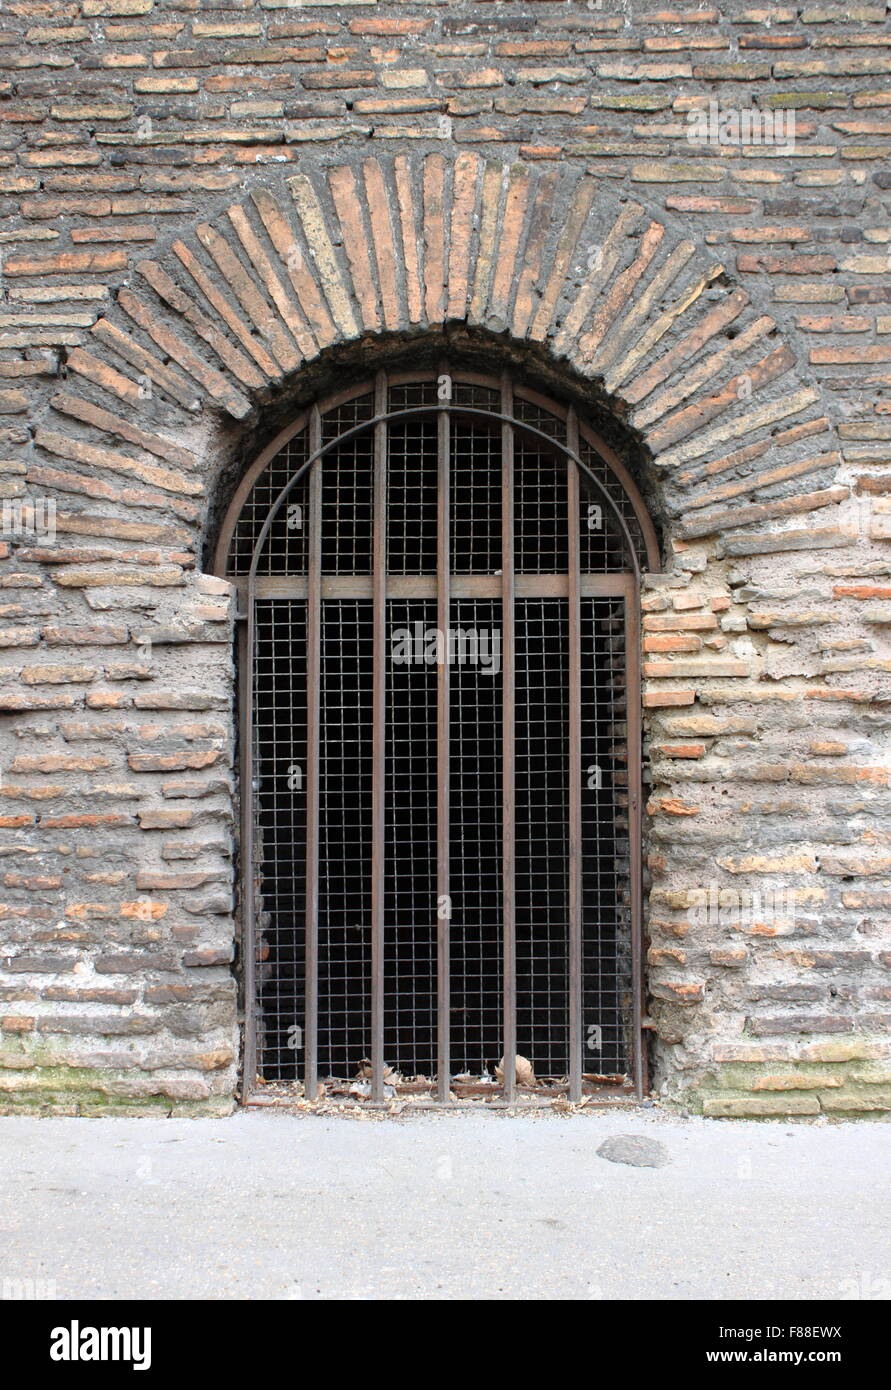 Closing Doors F : Closed door a prison with bars stock photo royalty free